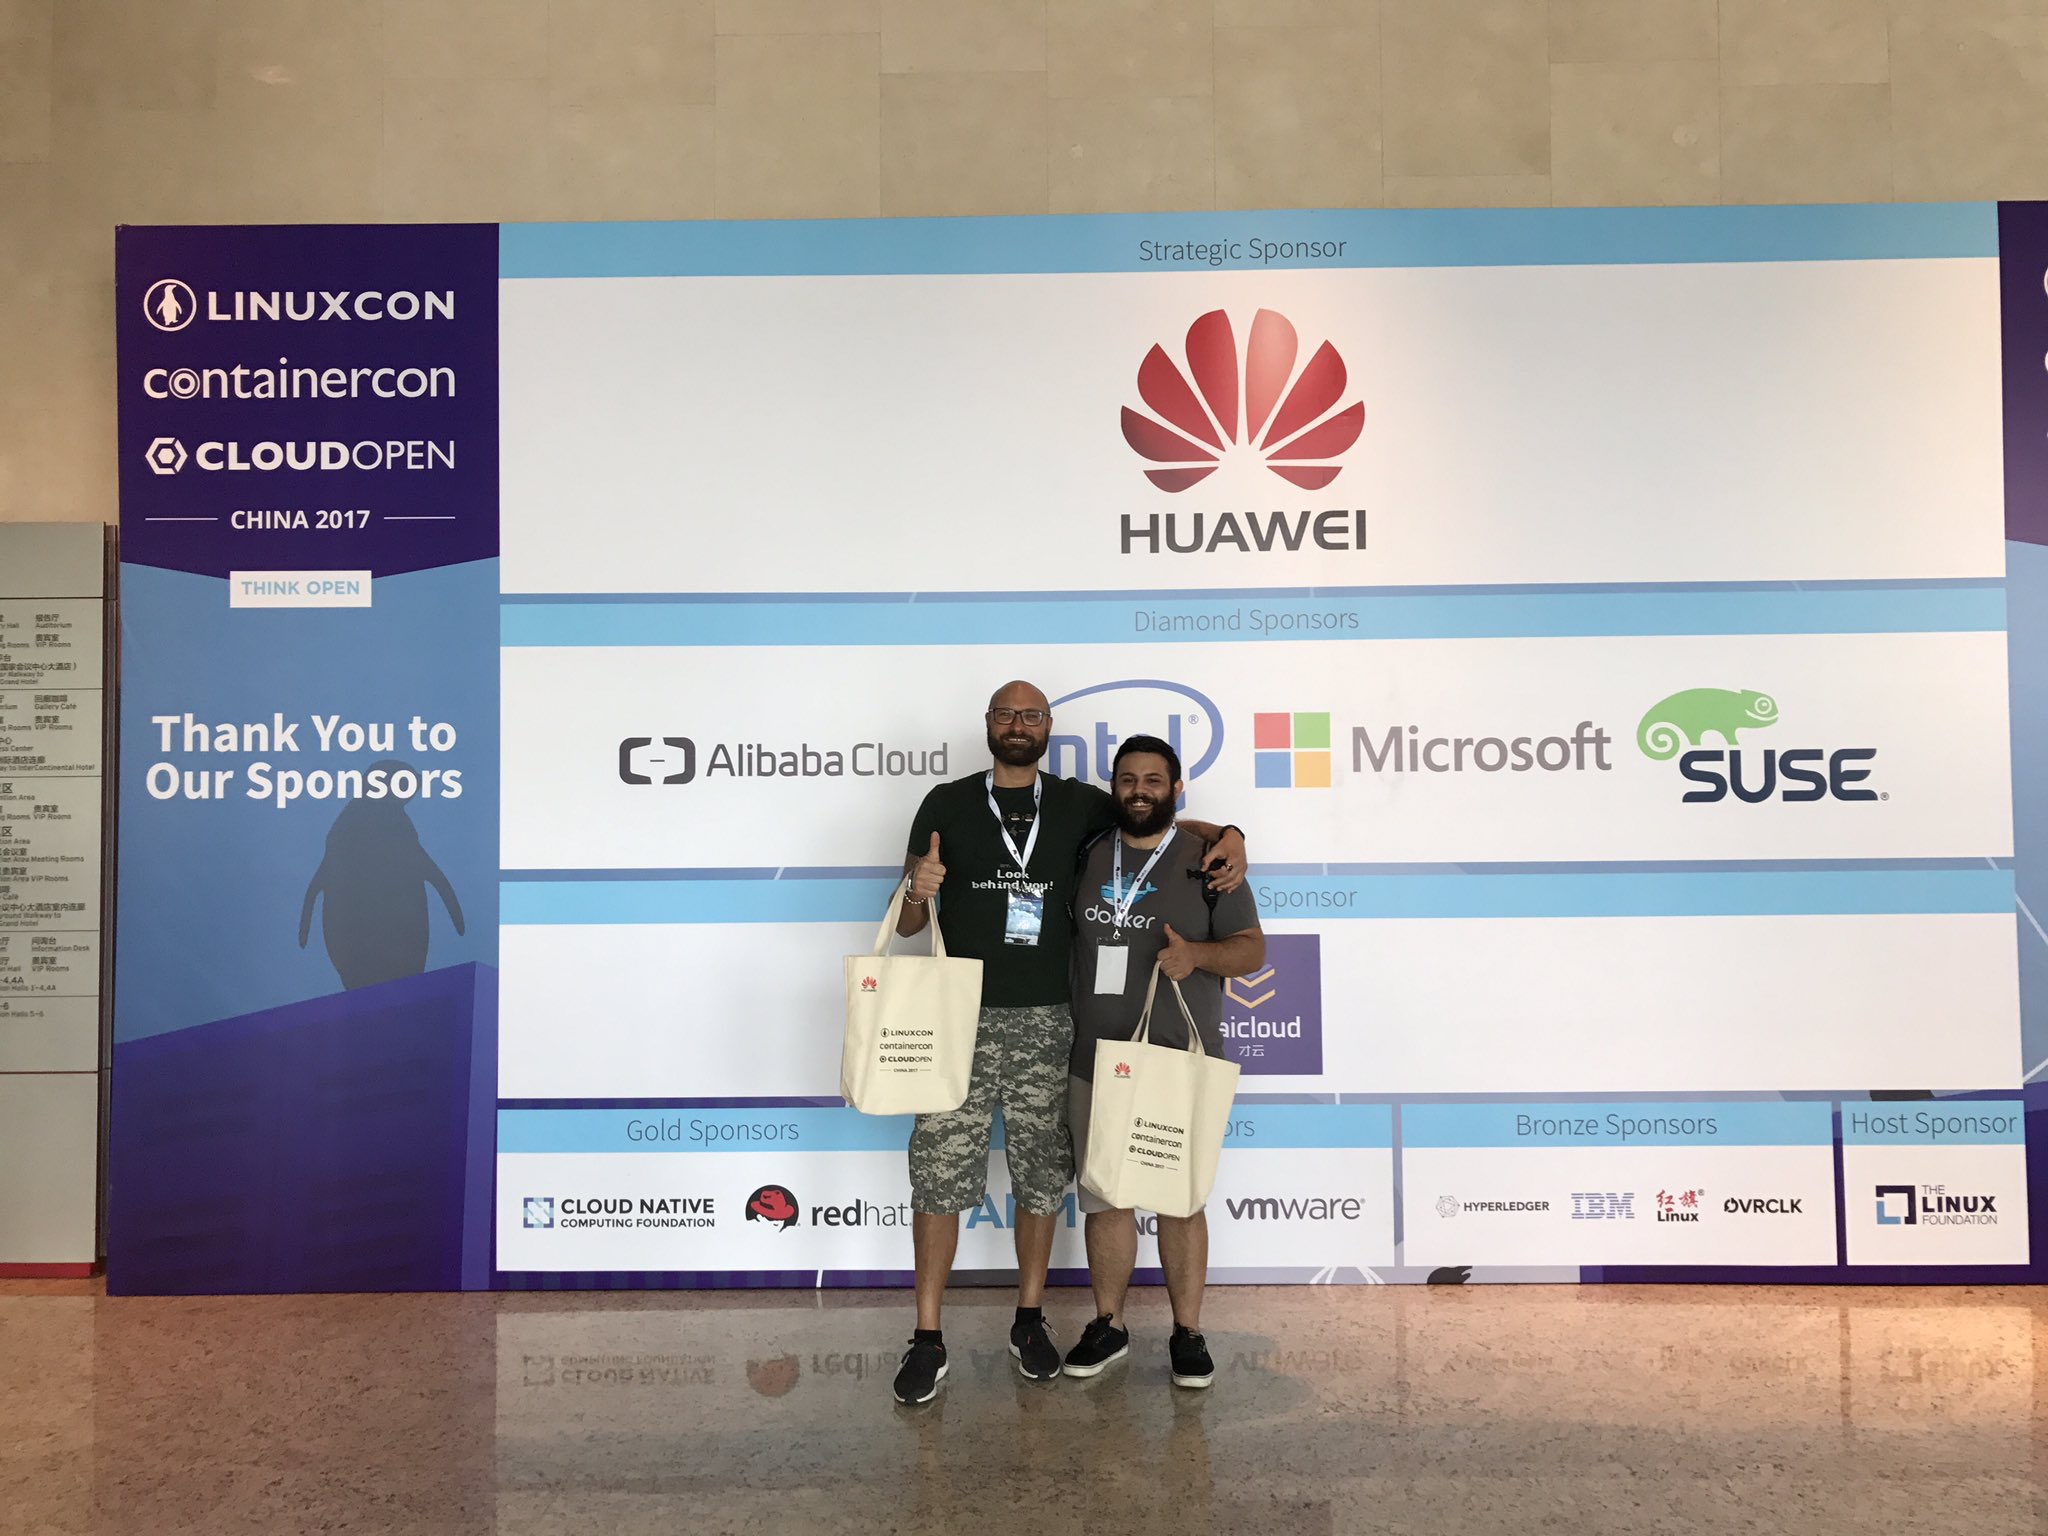 Kiratech-at-LinuxCon-Beijing-China.jpg